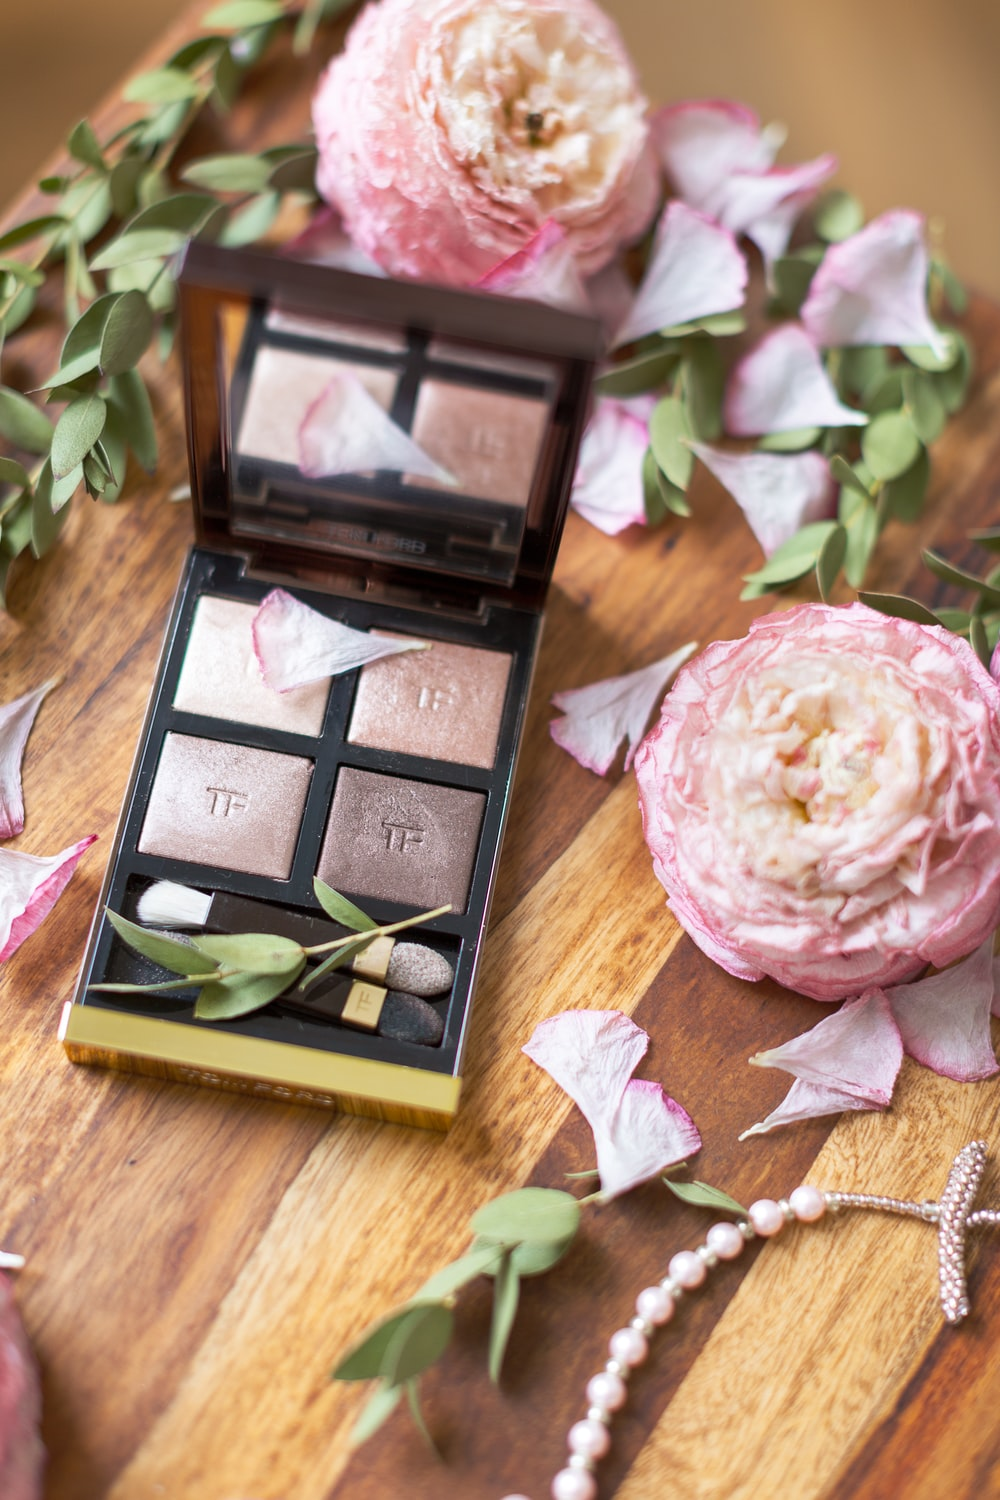 makeup palette beside pink flowers